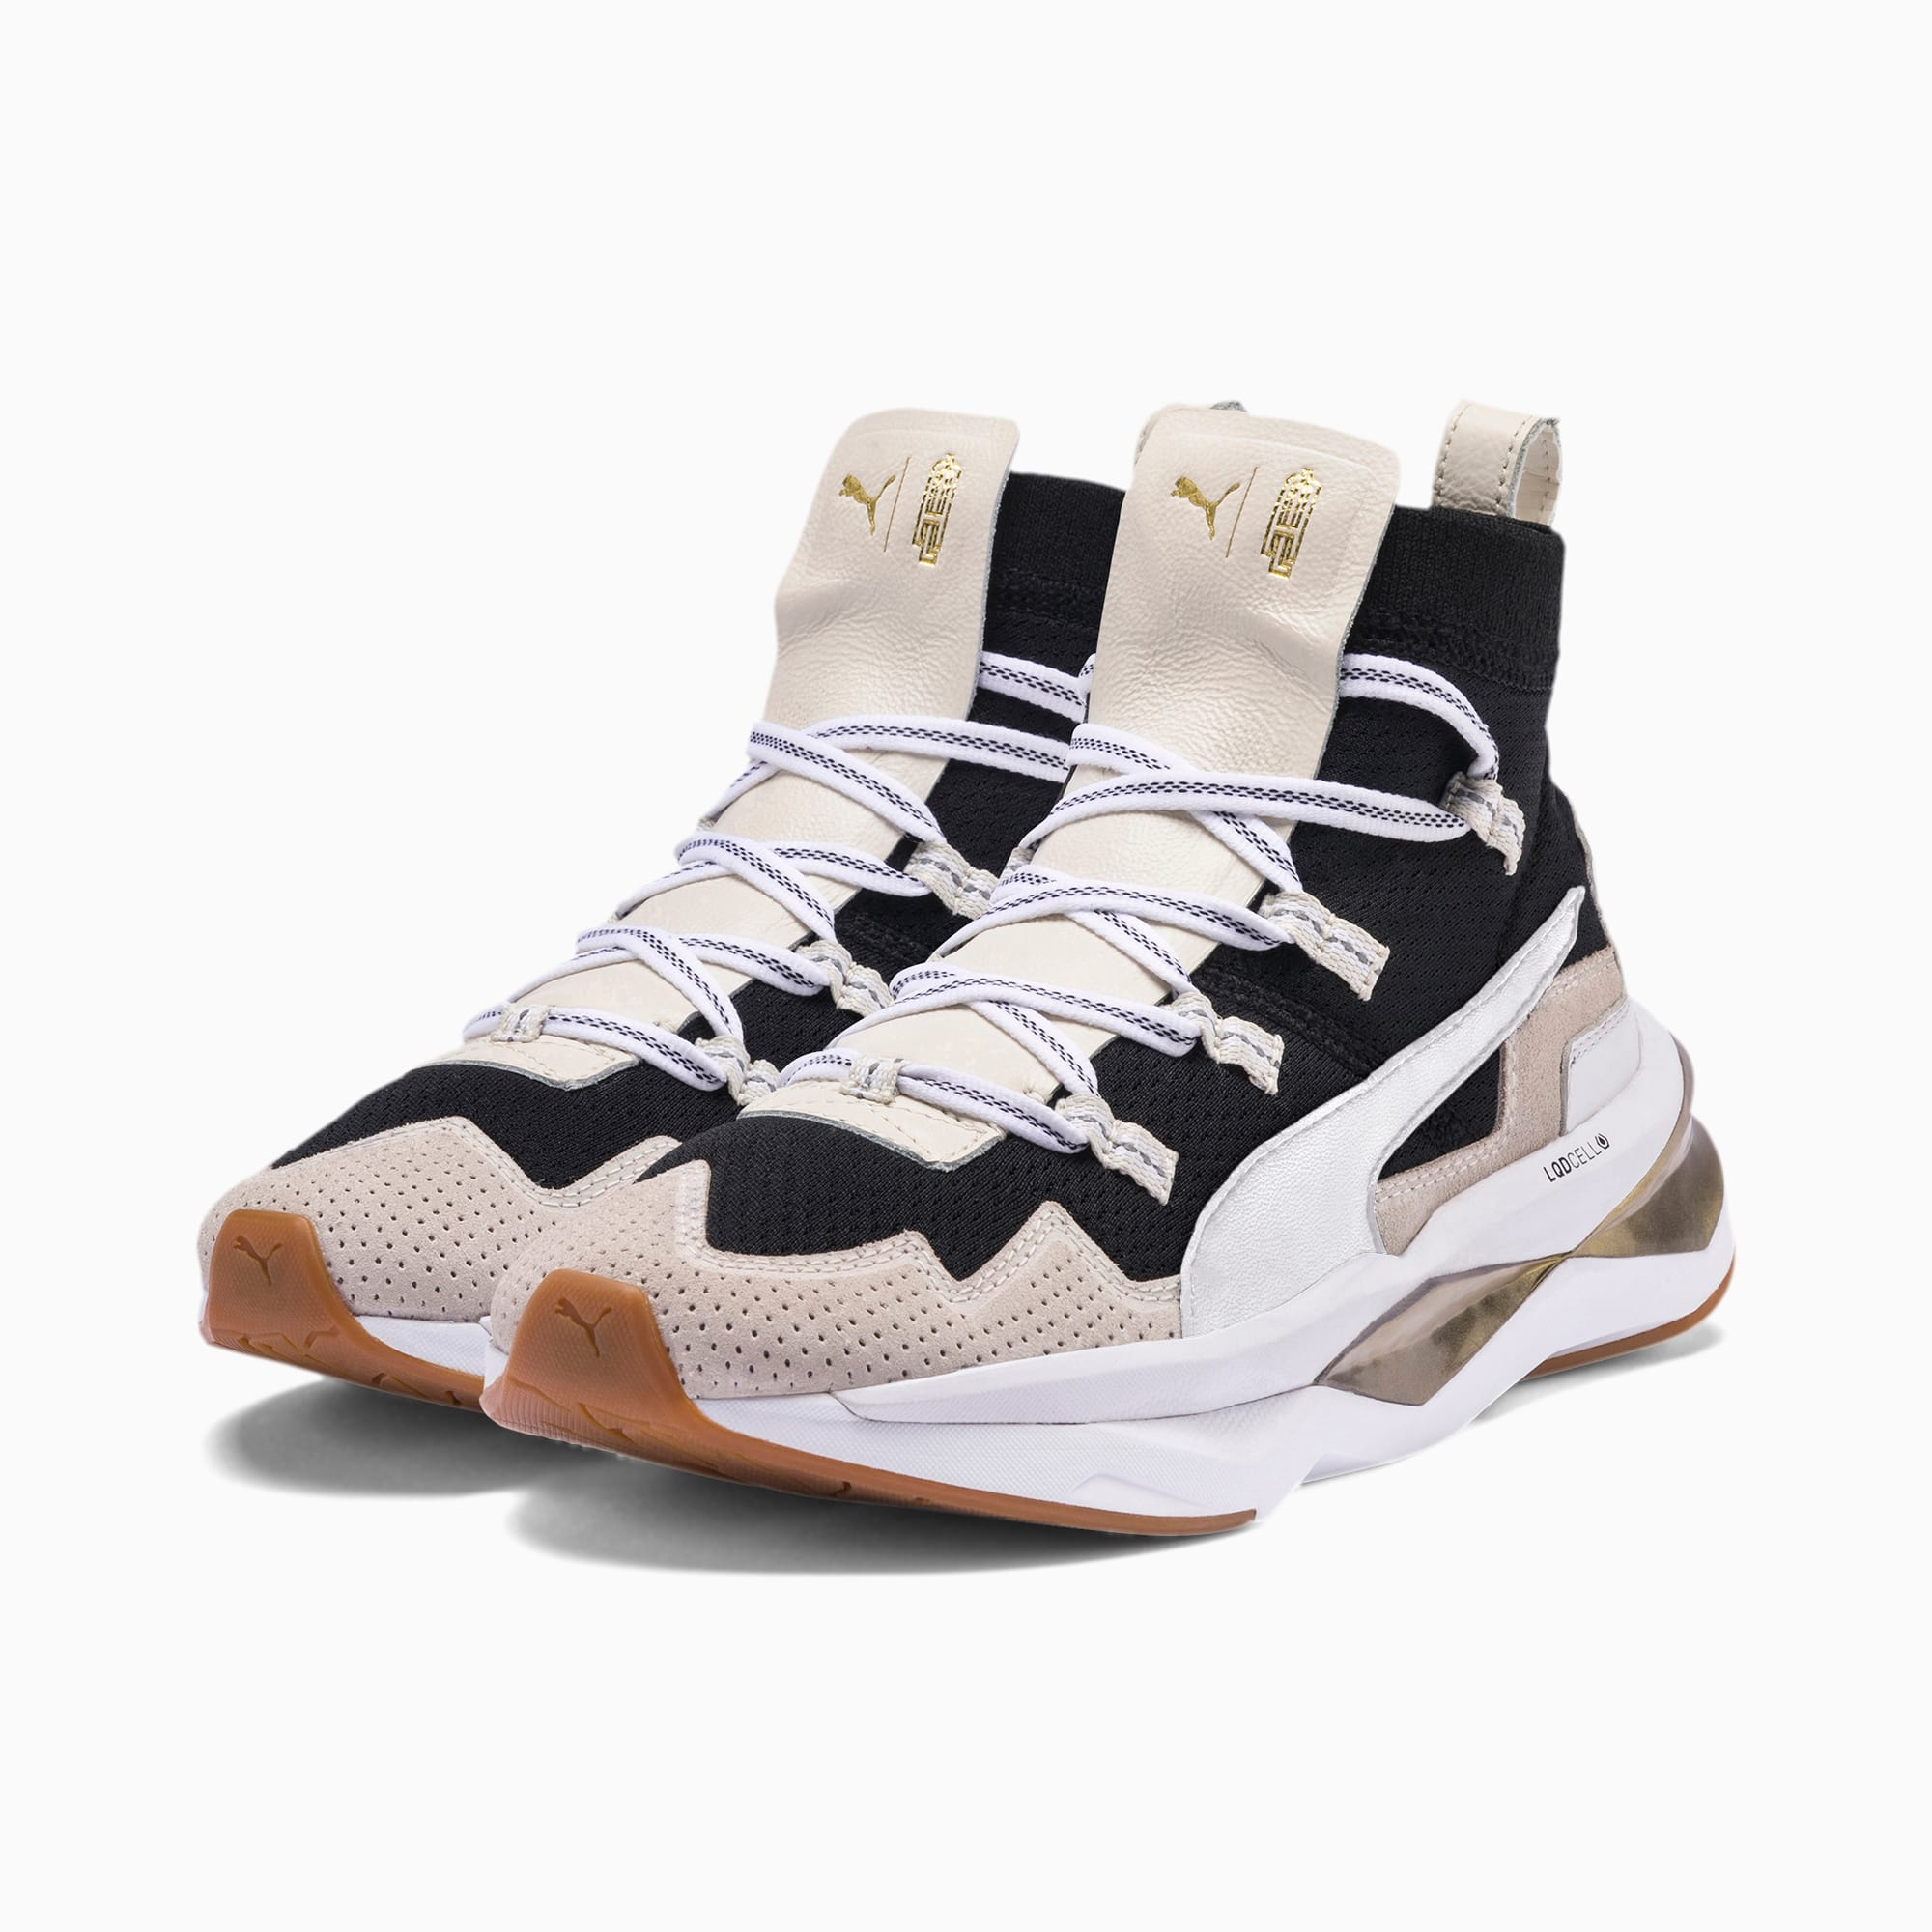 AL x PUMA LQDCELL Shatter XT Leather Women's Training Shoes